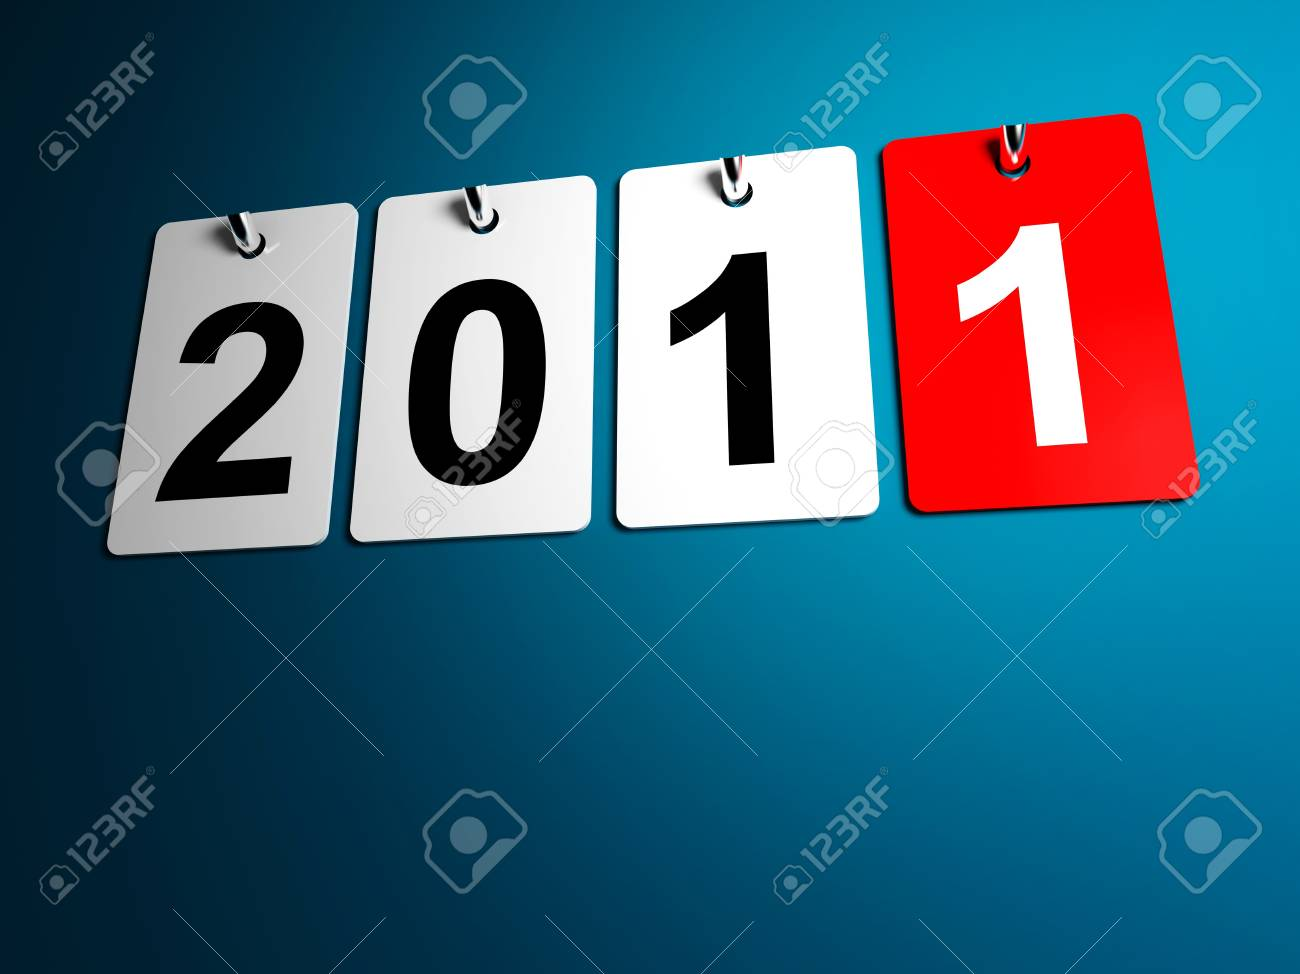 3d image of 2011 calendar for new year day Stock Photo - 7814311